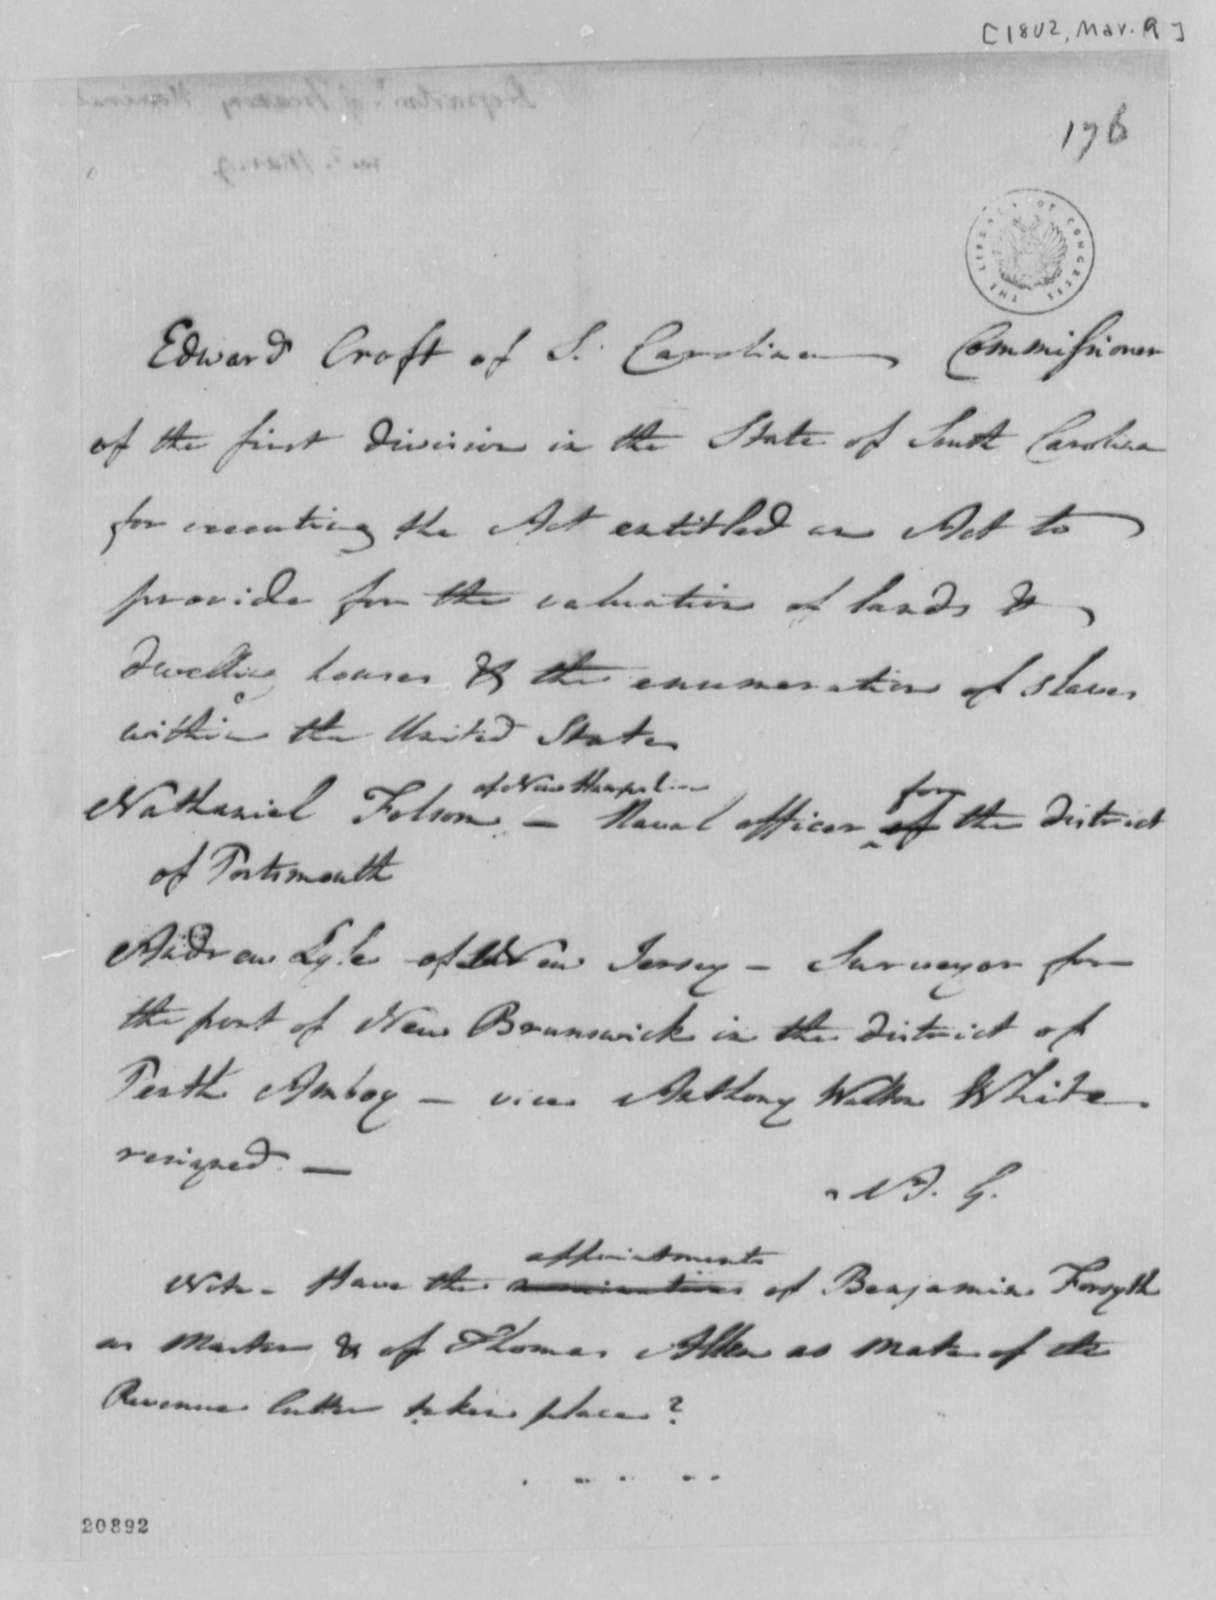 Albert Gallatin to Thomas Jefferson, March 9, 1802, Nominations